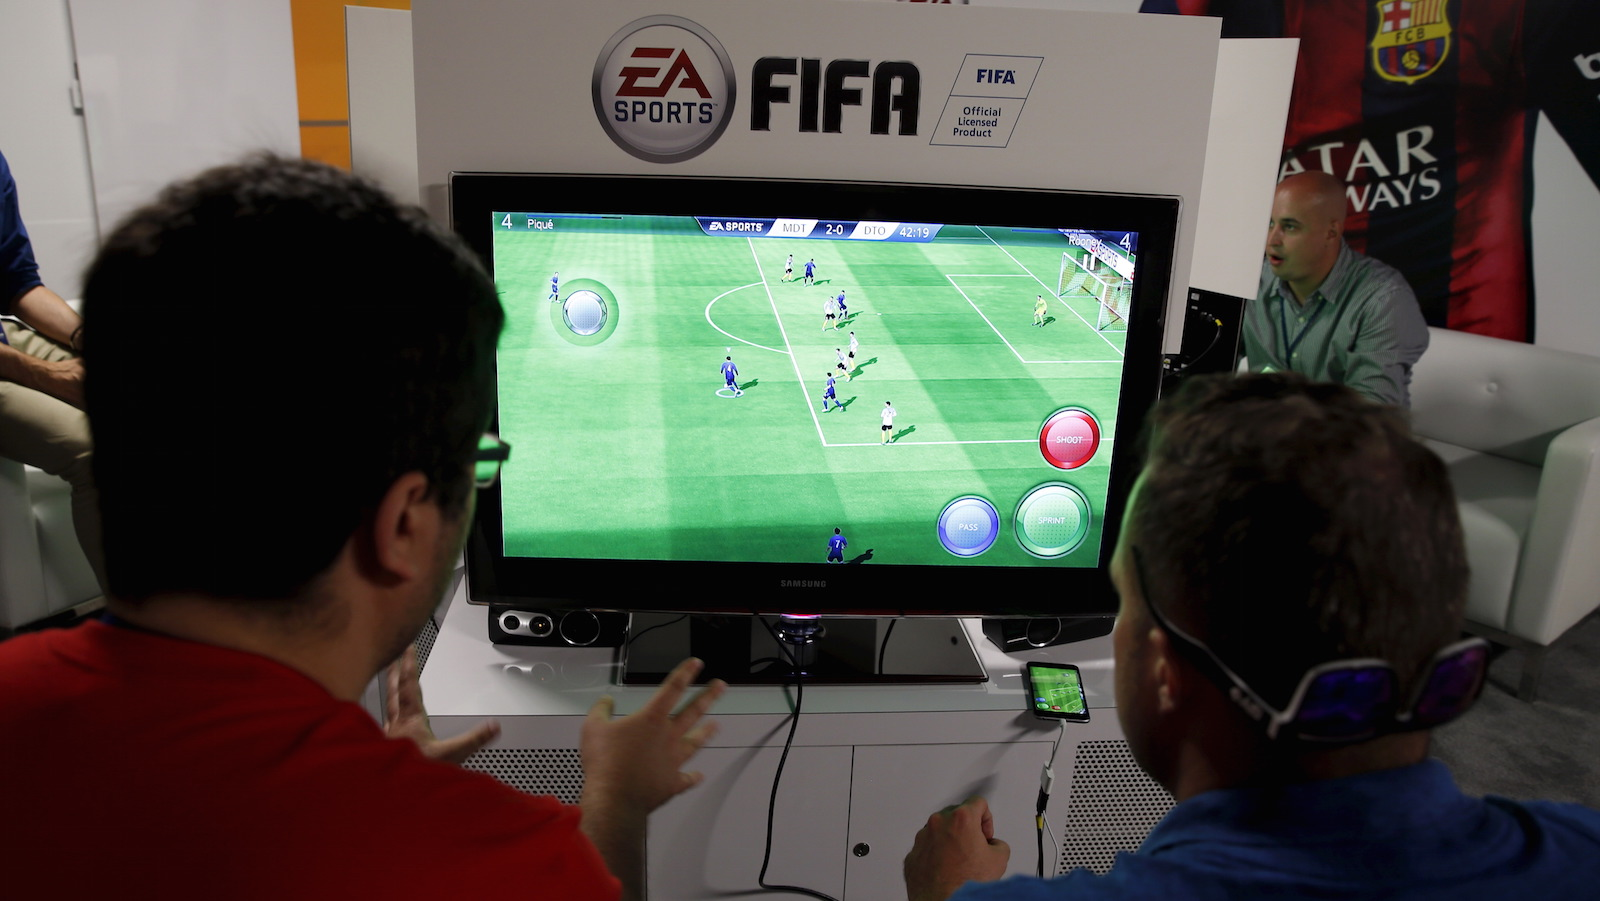 """People play Electronic Arts' """"FIFA"""" video game at the Microsoft Xbox booth at the Electronic Entertainment Expo, or E3, in Los Angeles, California, United States, June 16, 2015. REUTERS/Lucy Nicholson  - RTX1GT4J"""